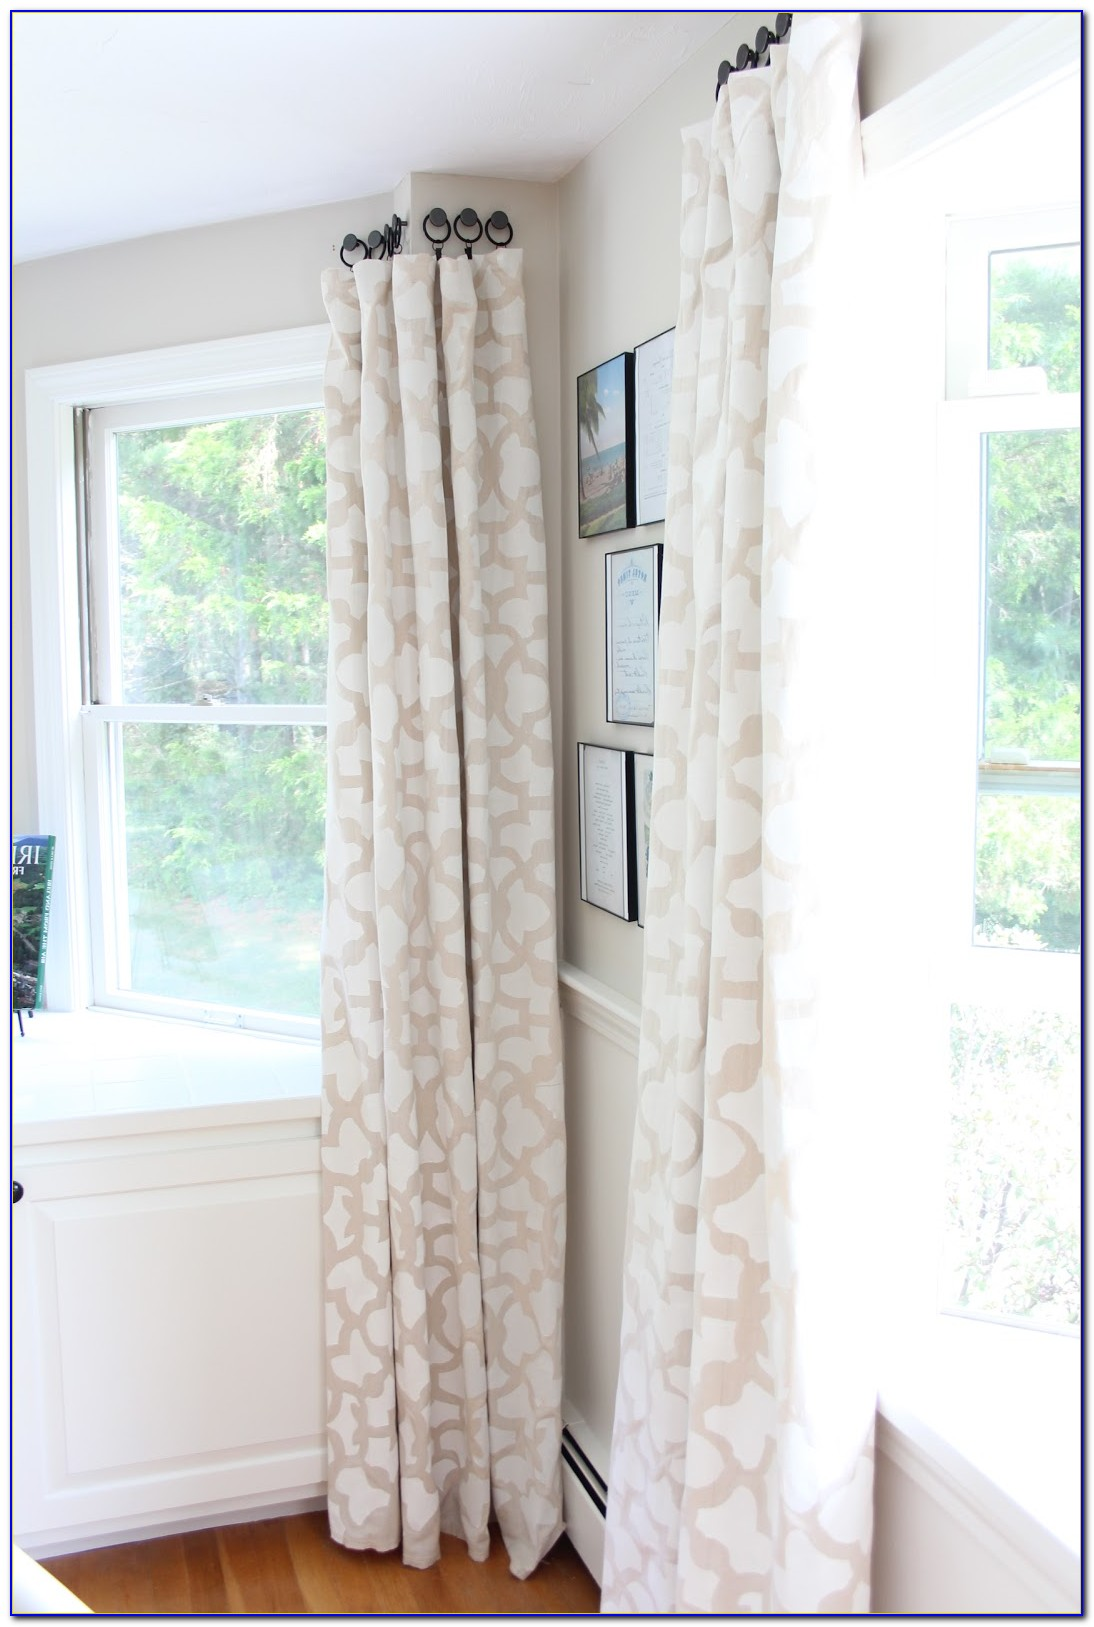 Hanging Curtain Rods In Studs